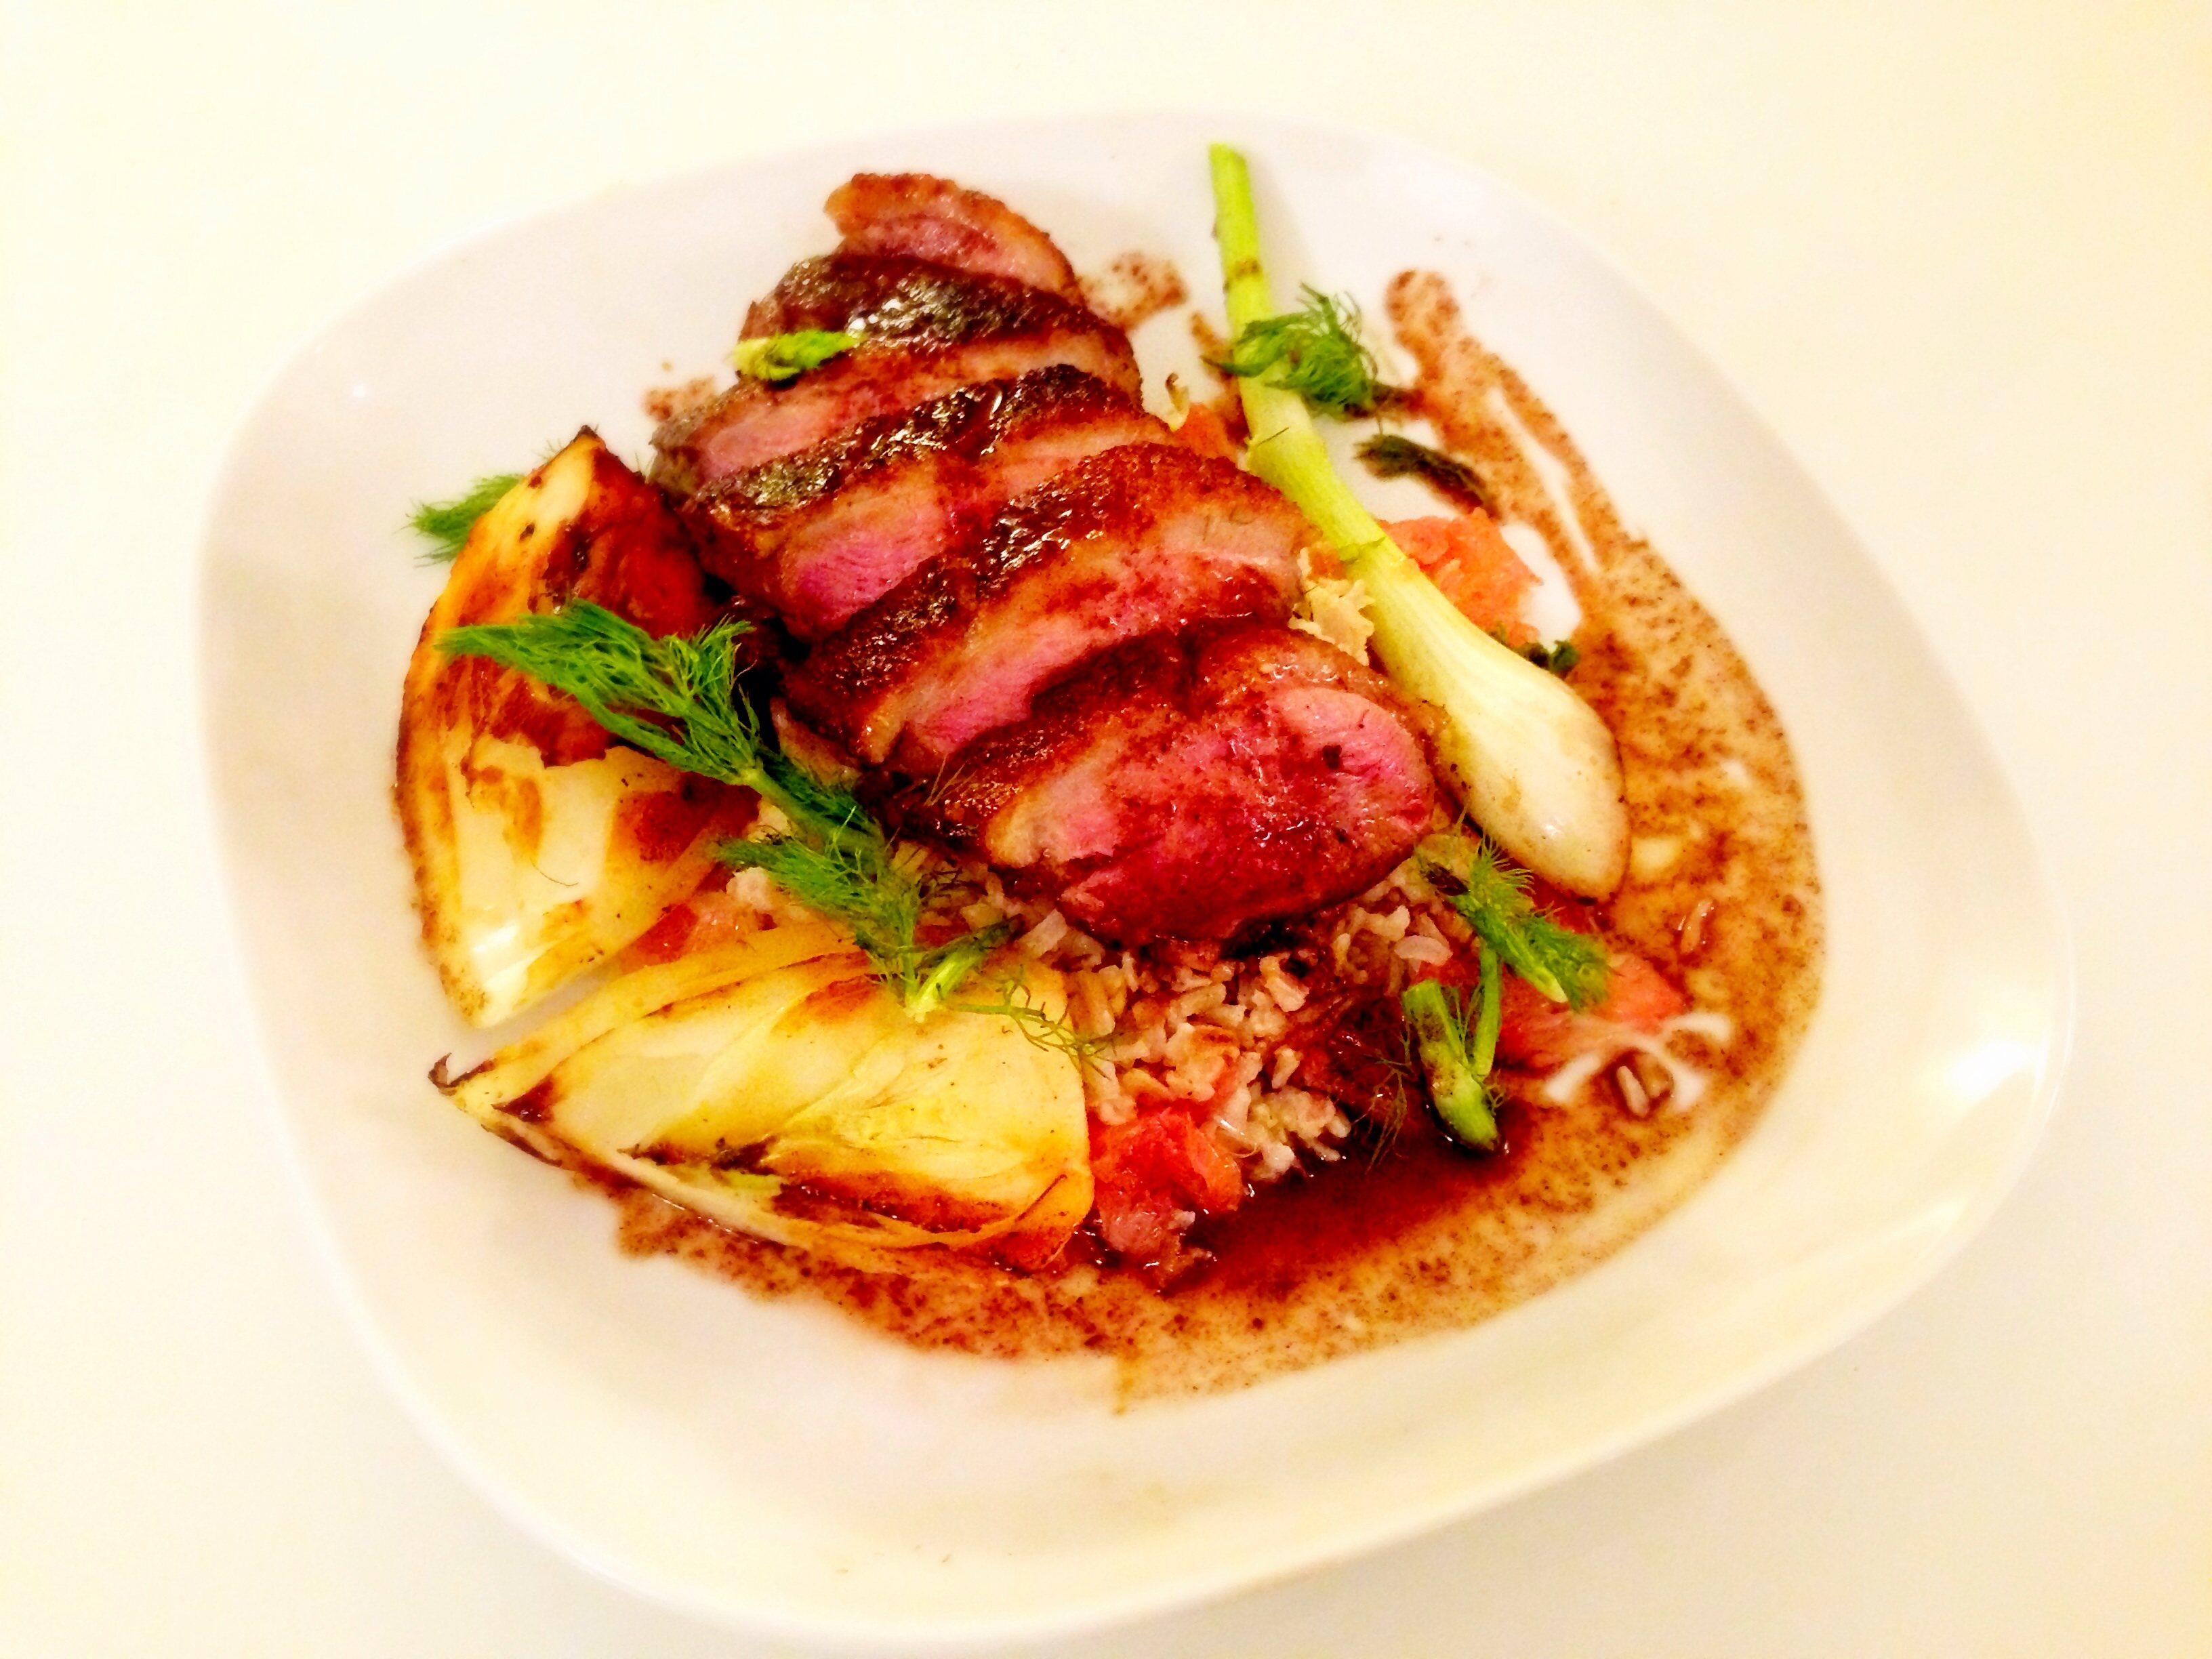 Seared Duck Breast, Grilled Fennel, Grapefruit Vinaigrette, Brown Rice Risotto